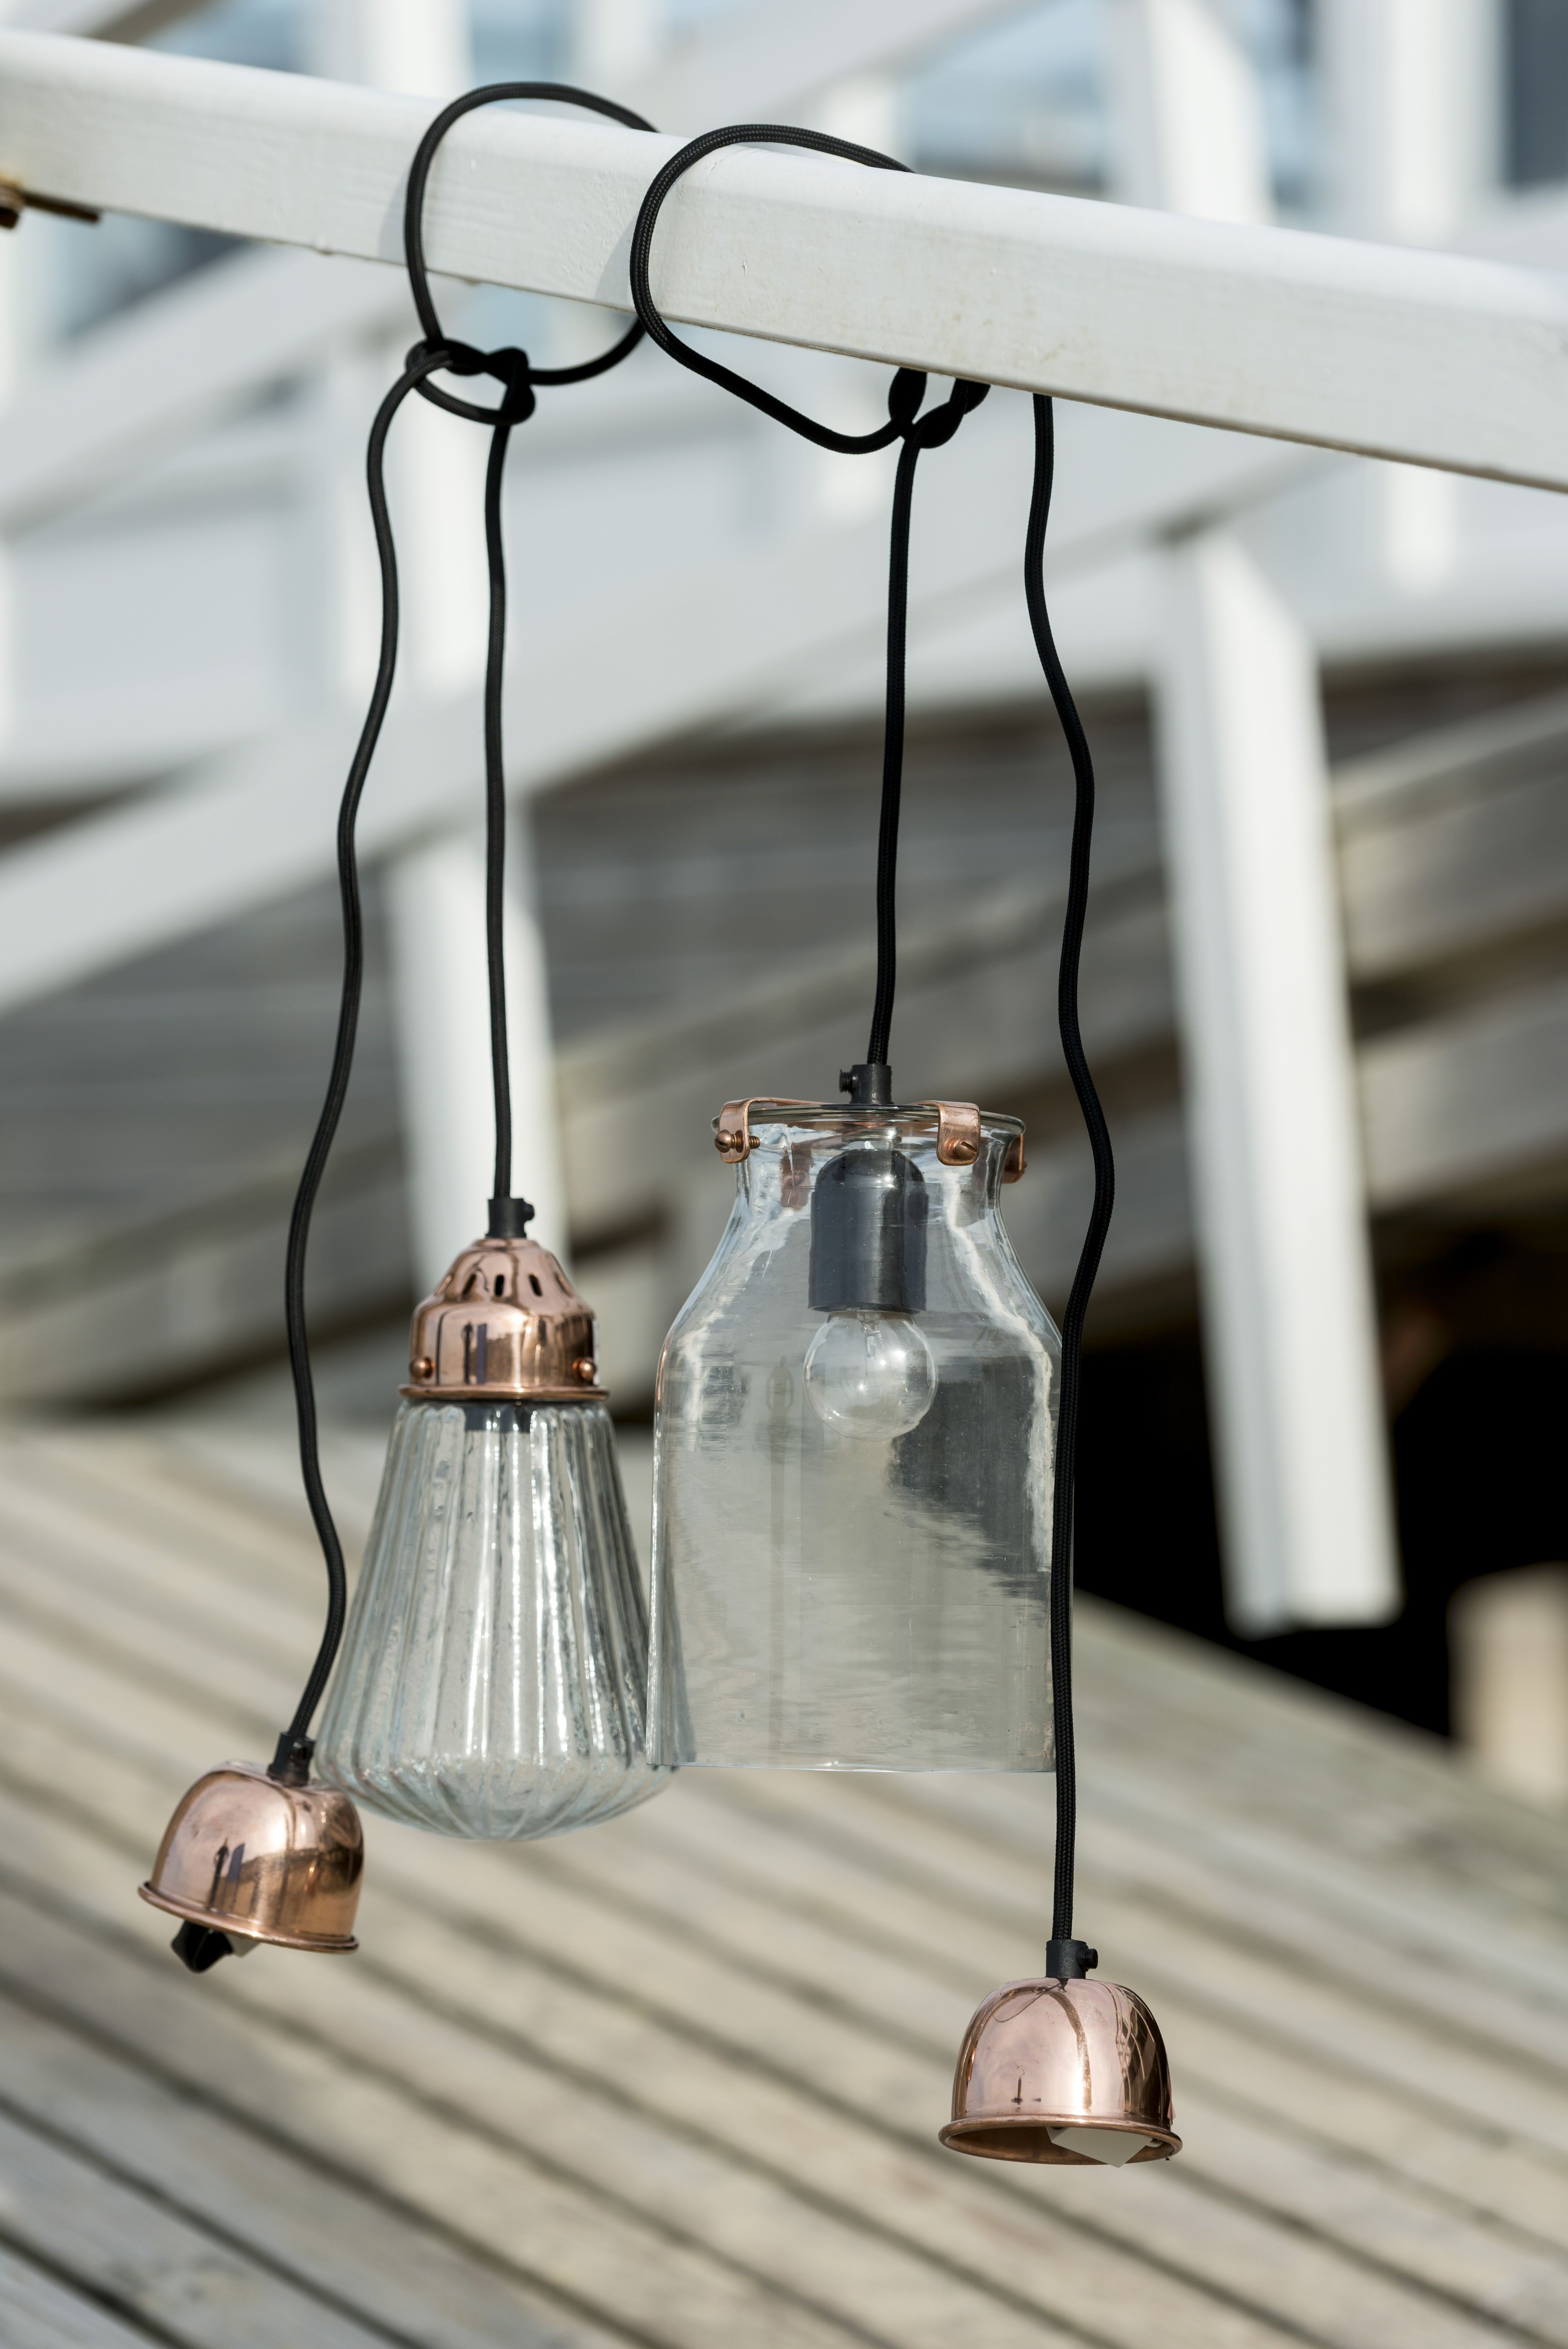 A simple but elegant and effective pendant light in decorative textured recycled clear glass. Paired with a minimal but decorative metal housing for the lamp holder and matching decorative ceiling fitting, available in two finishes.